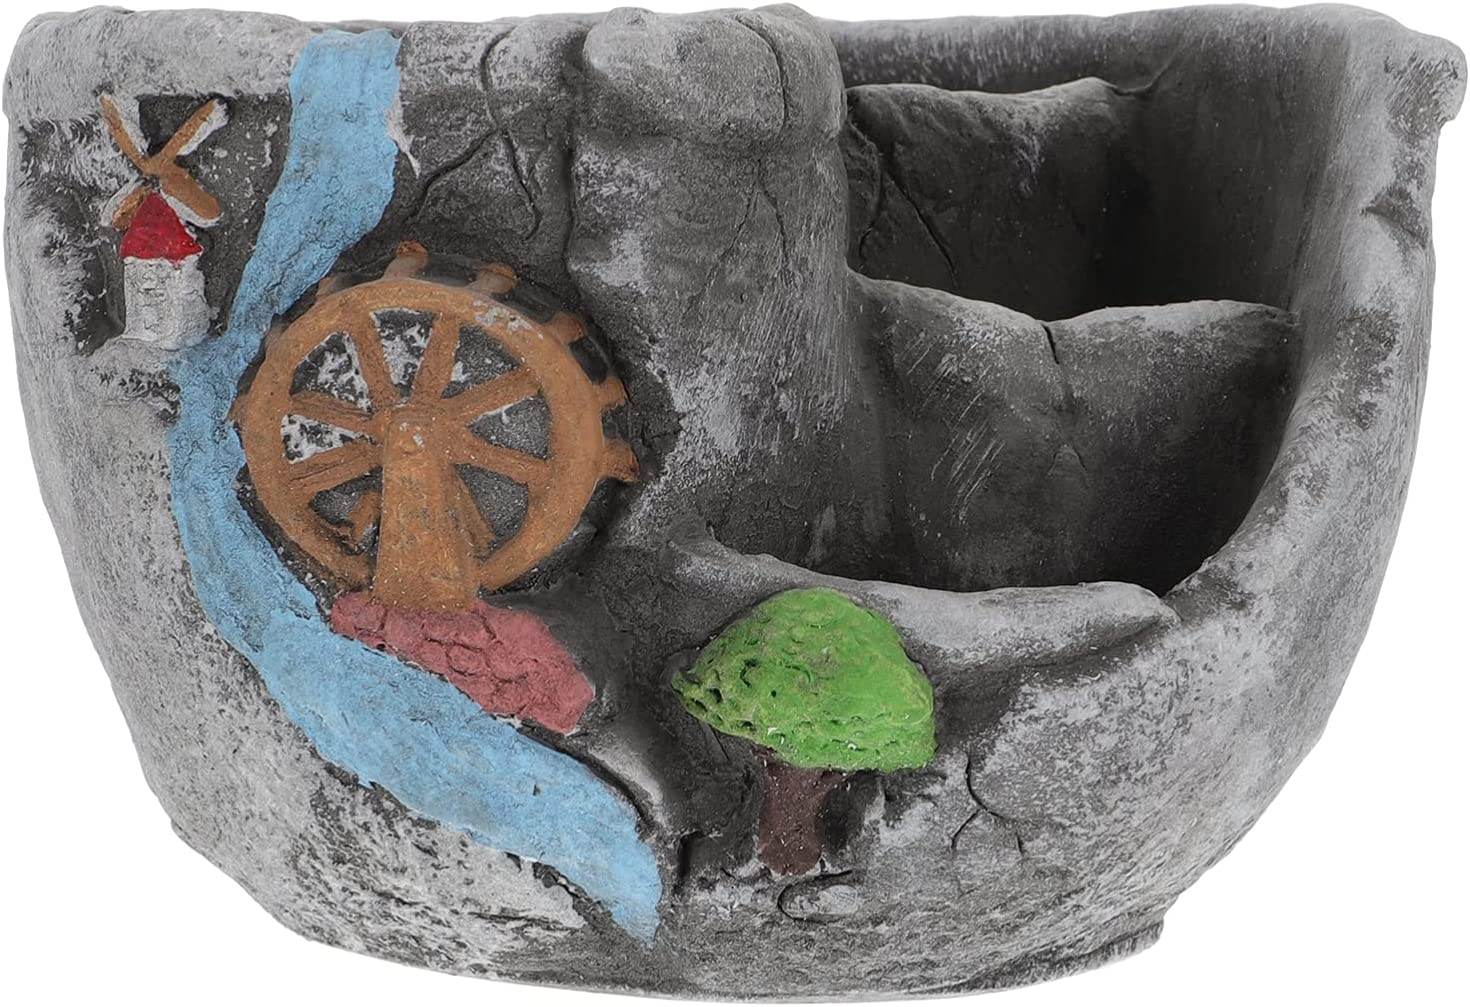 Happyyami Nautical Flower Pots Sales results No. 1 Ceramic Special Campaign S Wheel Lighthouse Design